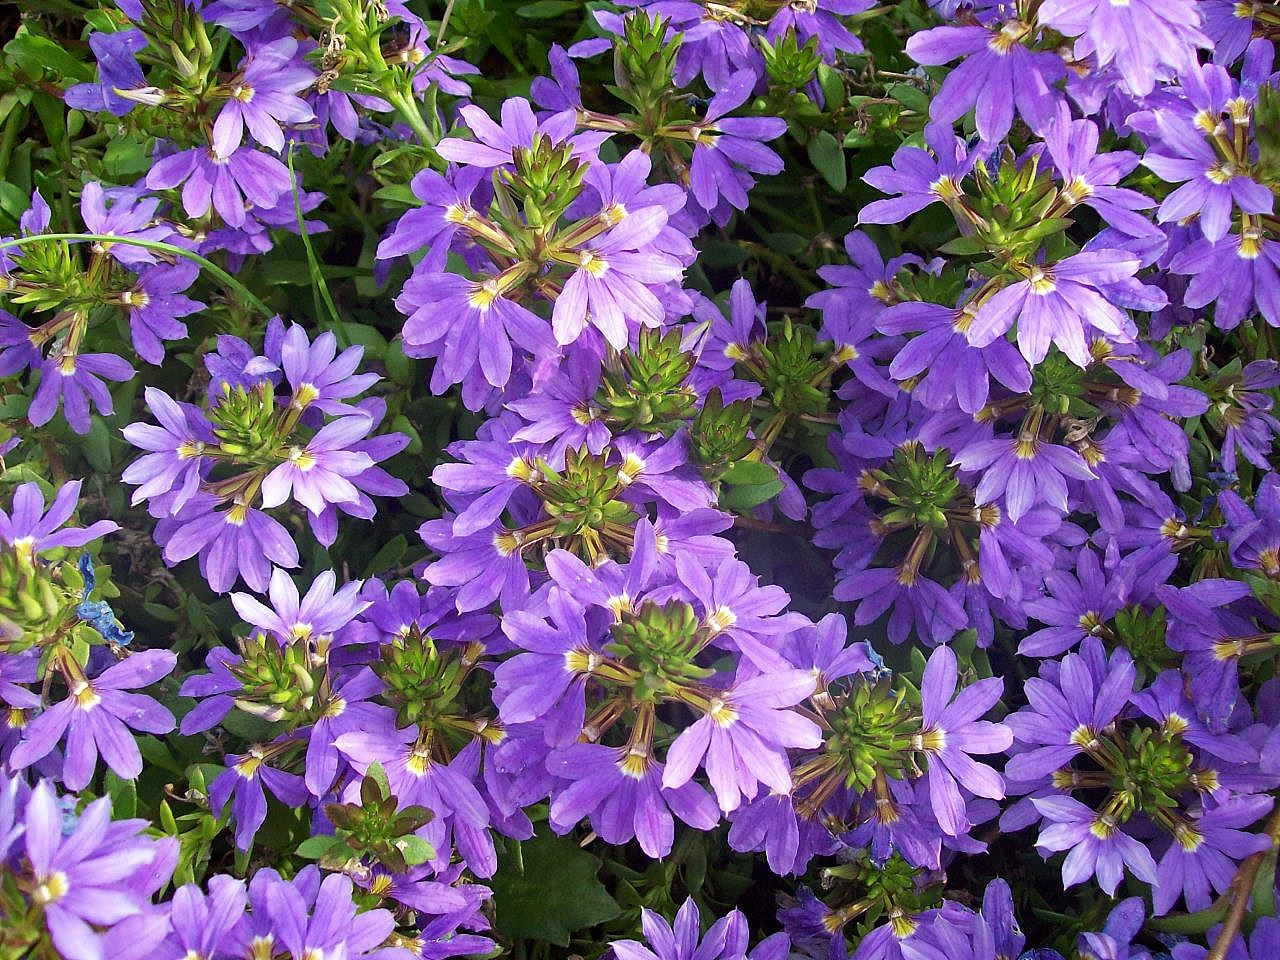 How to grow fan flower gardening fan flower growing fan flower scaevola aemula scaevola aemula fcherblume izmirmasajfo